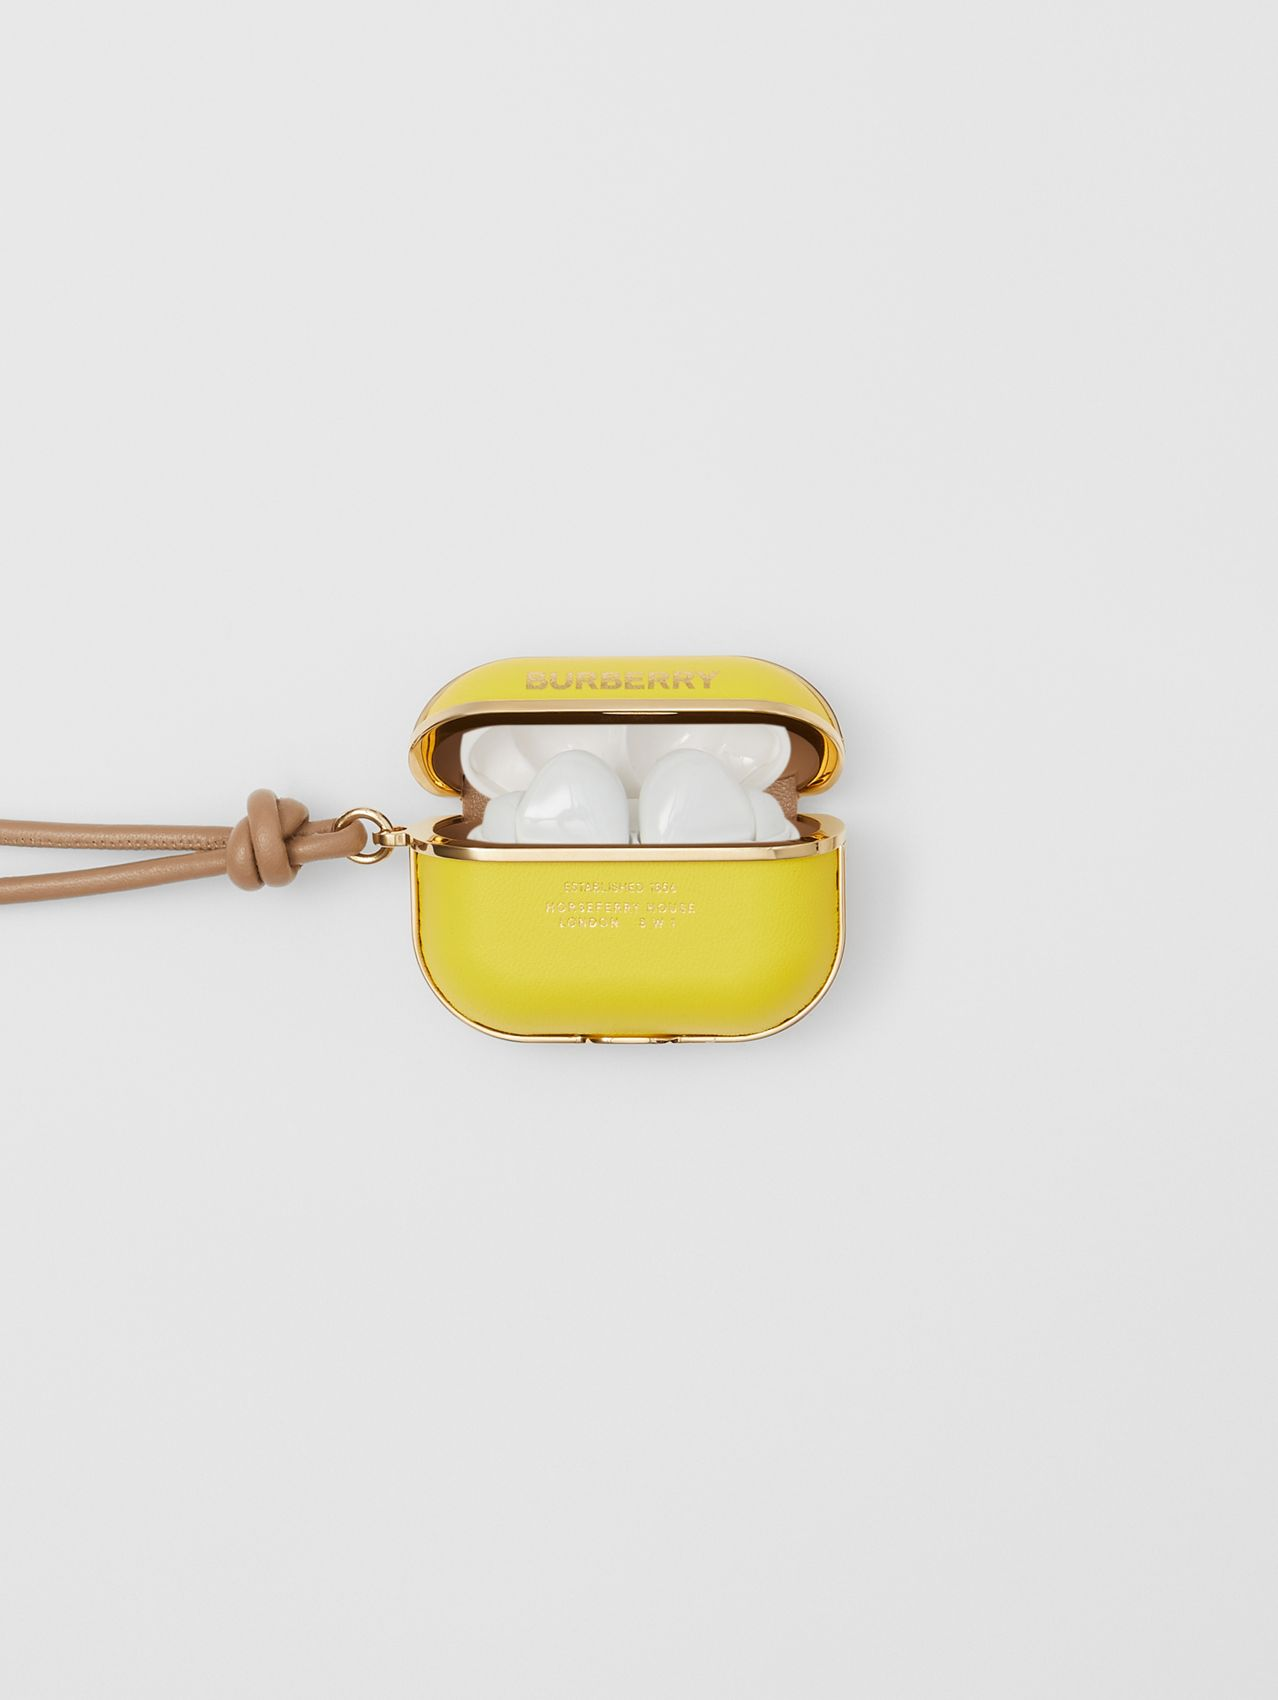 Horseferry Print Lambskin AirPods Pro Case in Marigold Yellow